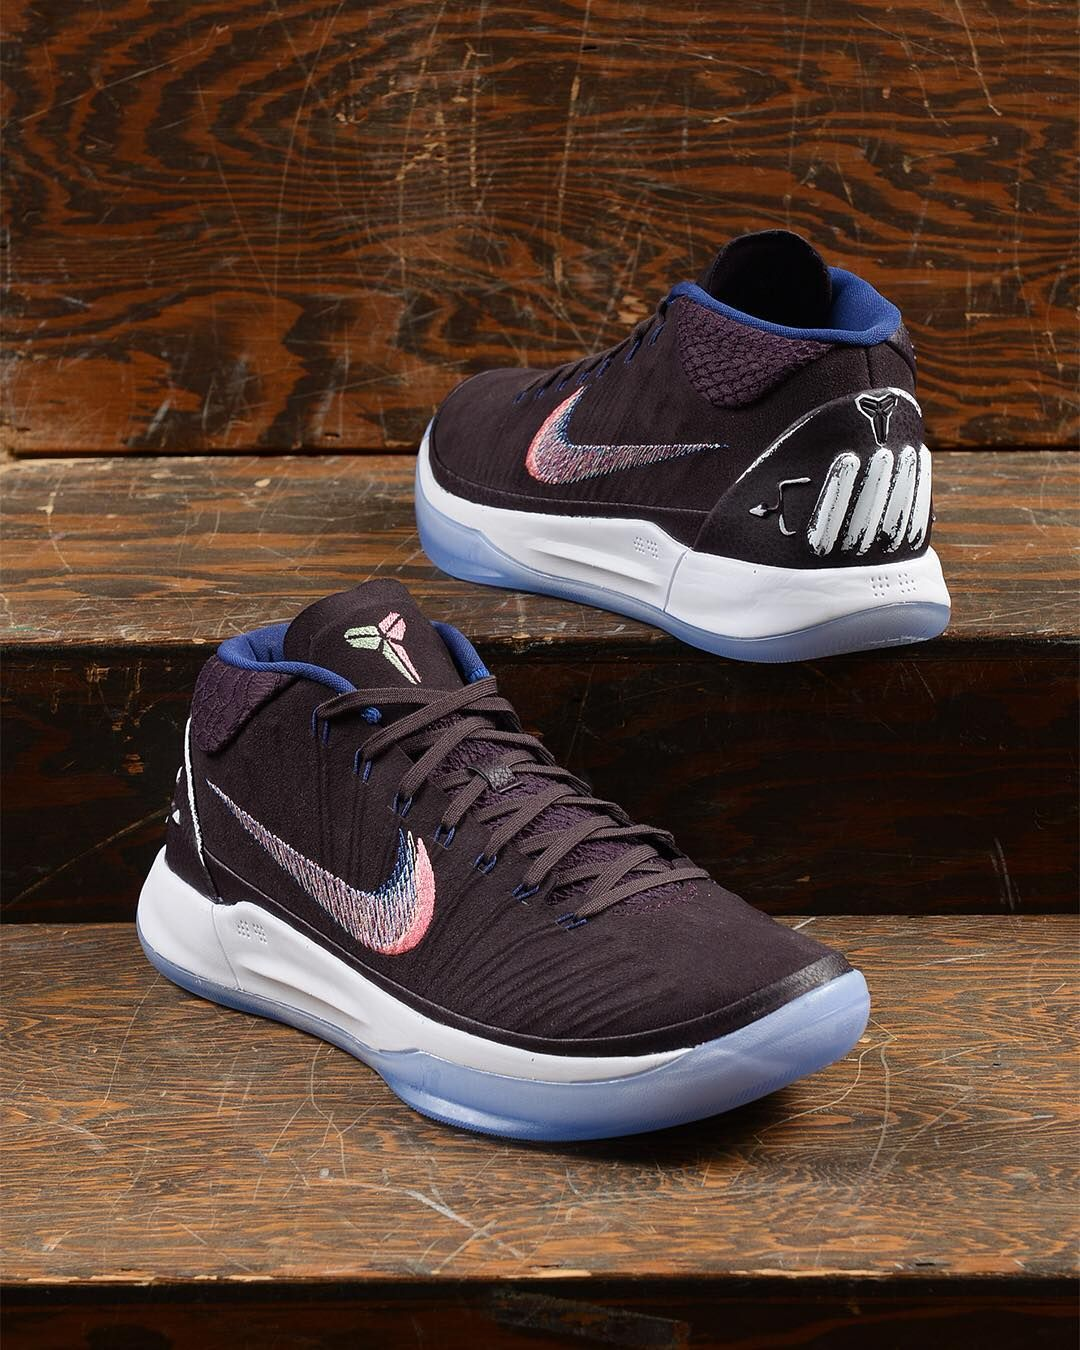 check out 3c570 18c82 Vino The Port Wine Nike Kobe A.D.